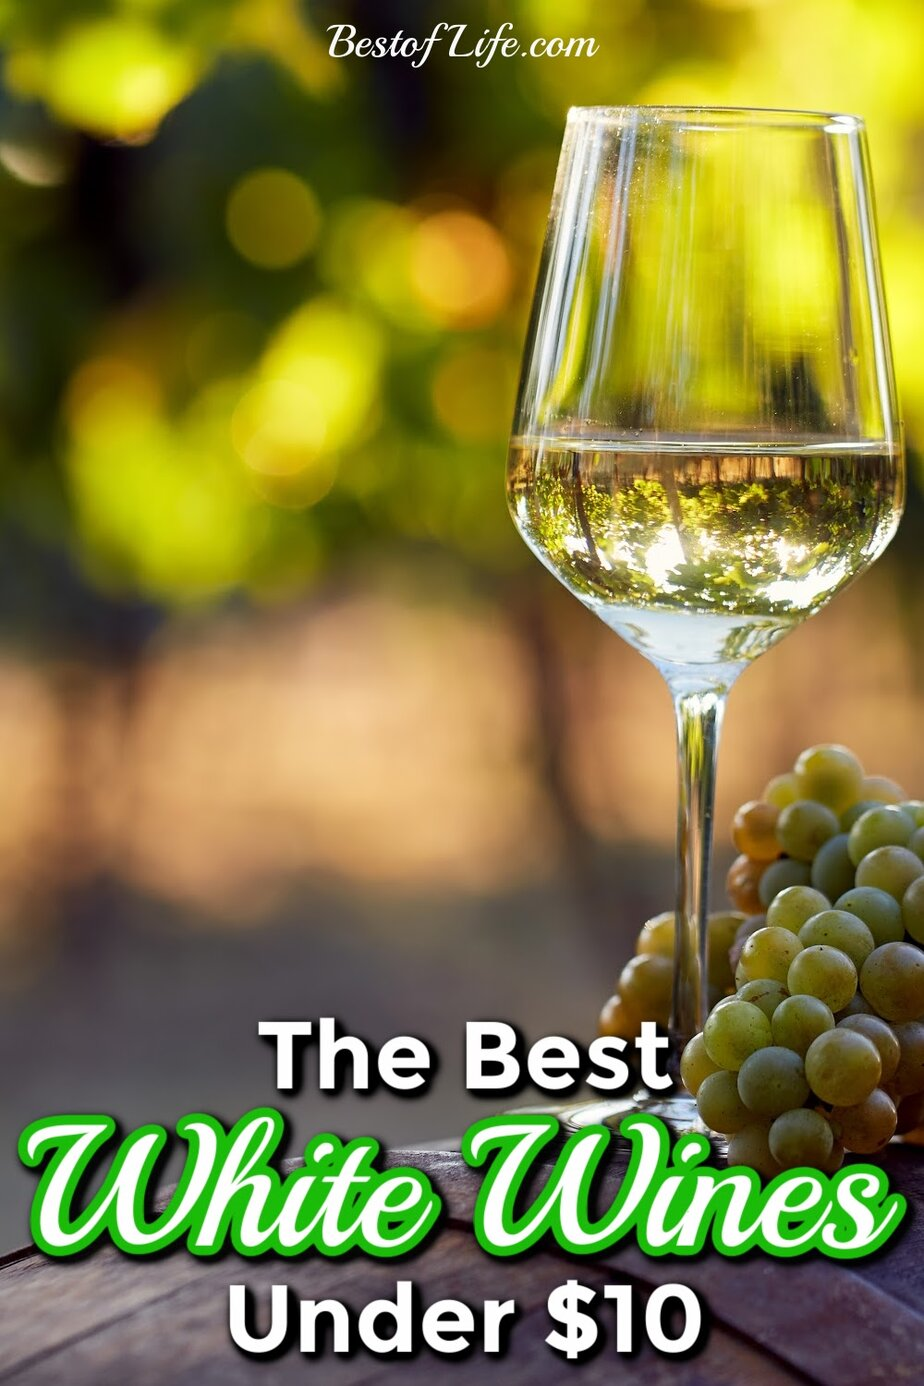 Grab some of the best white wines under 10 dollars for your next date night, happy hour with friends, or a night in alone. Best Affordable White Wines | White Wines | Wine Down #wine #winetips #winedown #whino via @thebestoflife